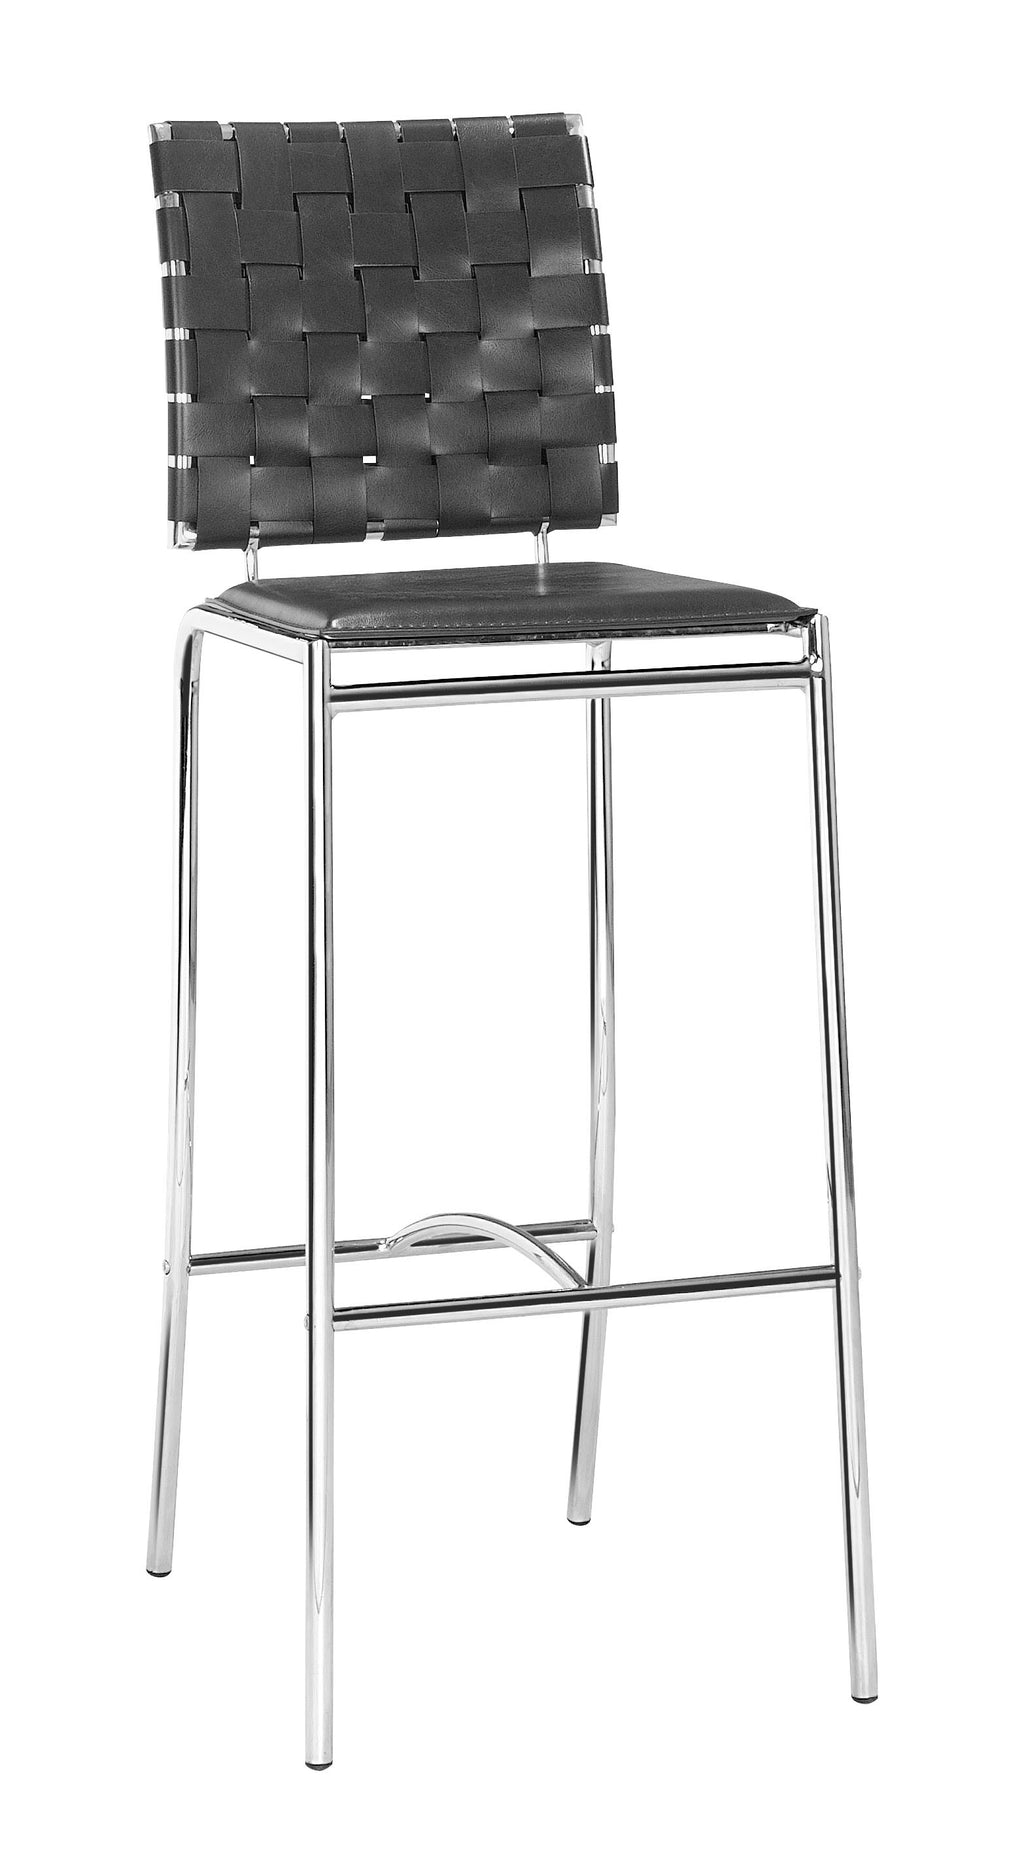 Criss Cross Bar Chair (Black)